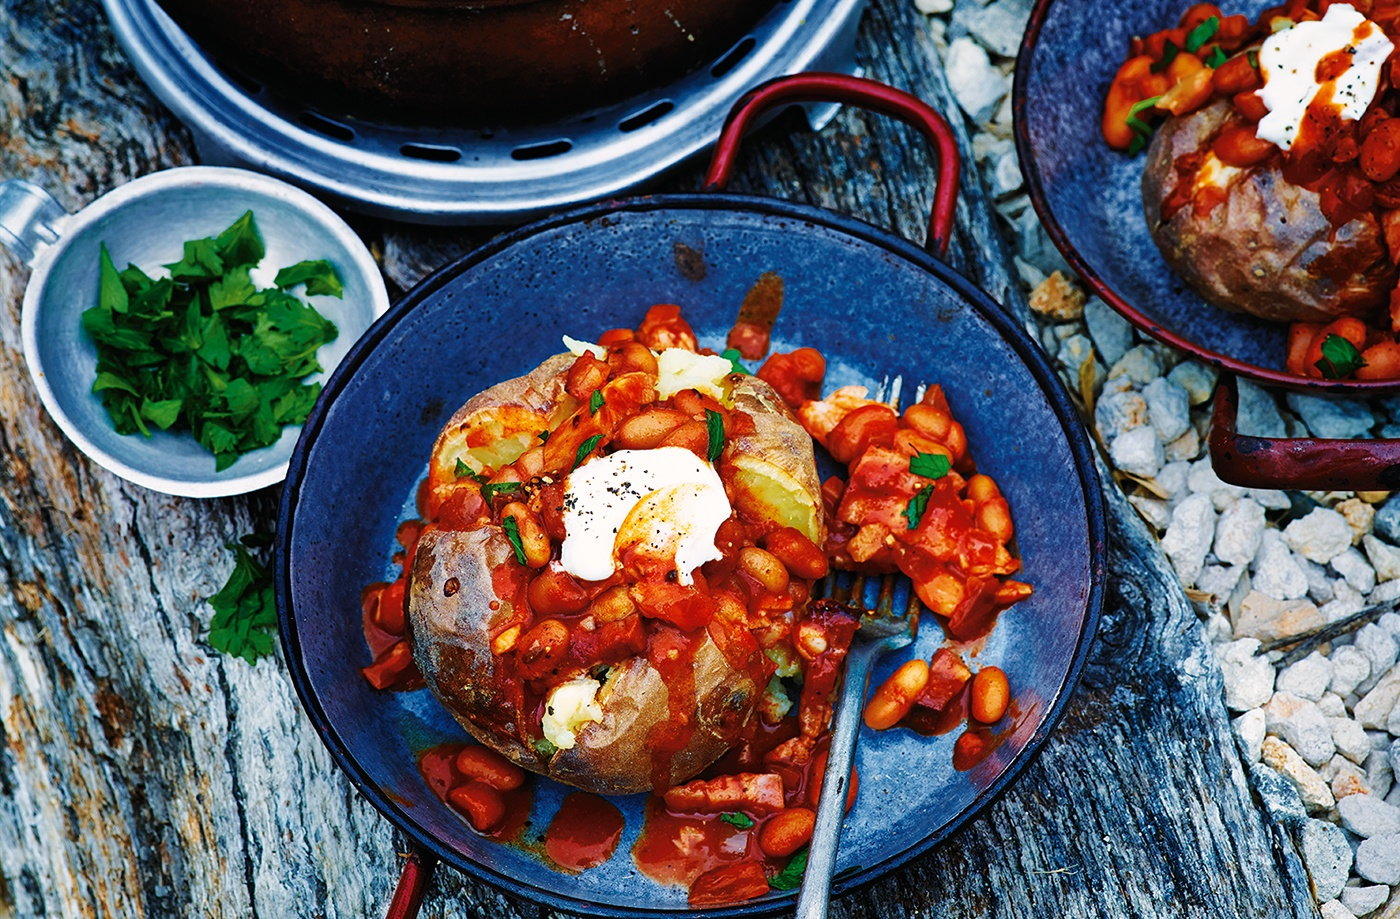 Smoky baked beans with jacket potatoes